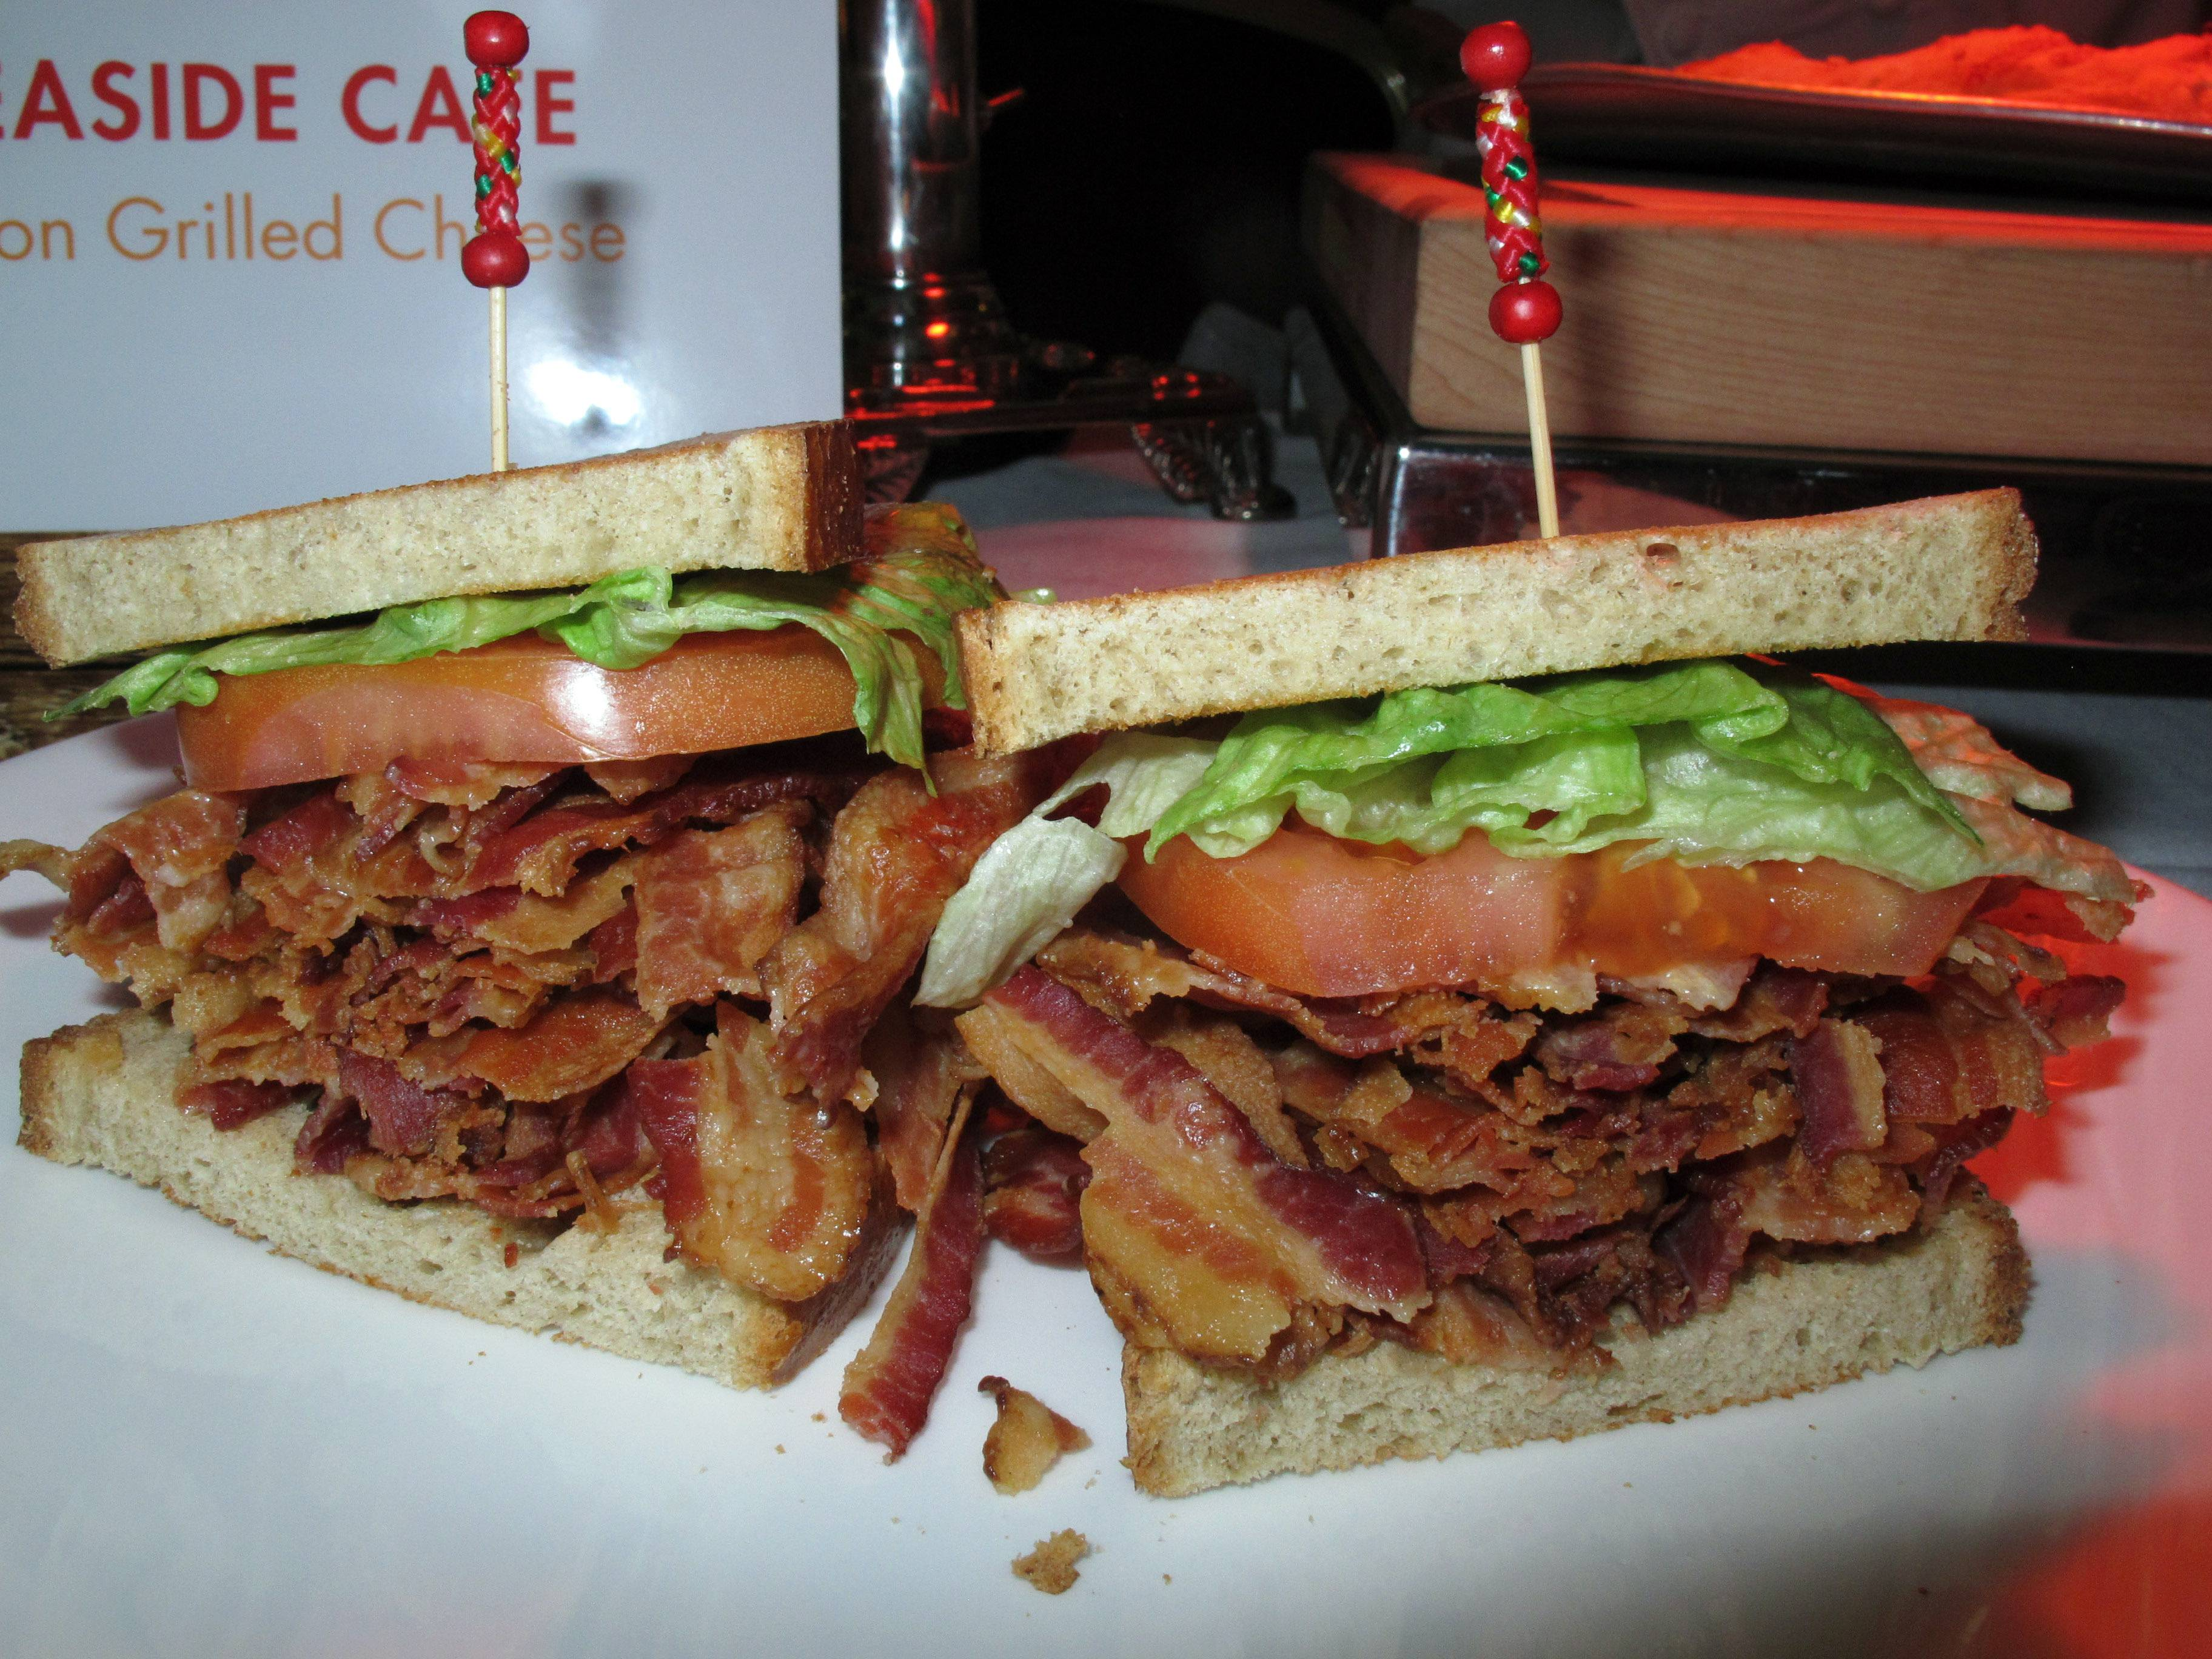 A bacon-lettuce-and-tomato sandwich made with an entire pound of bacon at the Tropicana Casino and Resort in Atlantic City, N.J. The casino's Bacon Week festival includes unusual offerings like bacon milk shakes, bacon cupcakes, bacon bloody Marys, beer, vodka and bourbon, and even bacon-flavored toothpaste, dental floss and lip balm.